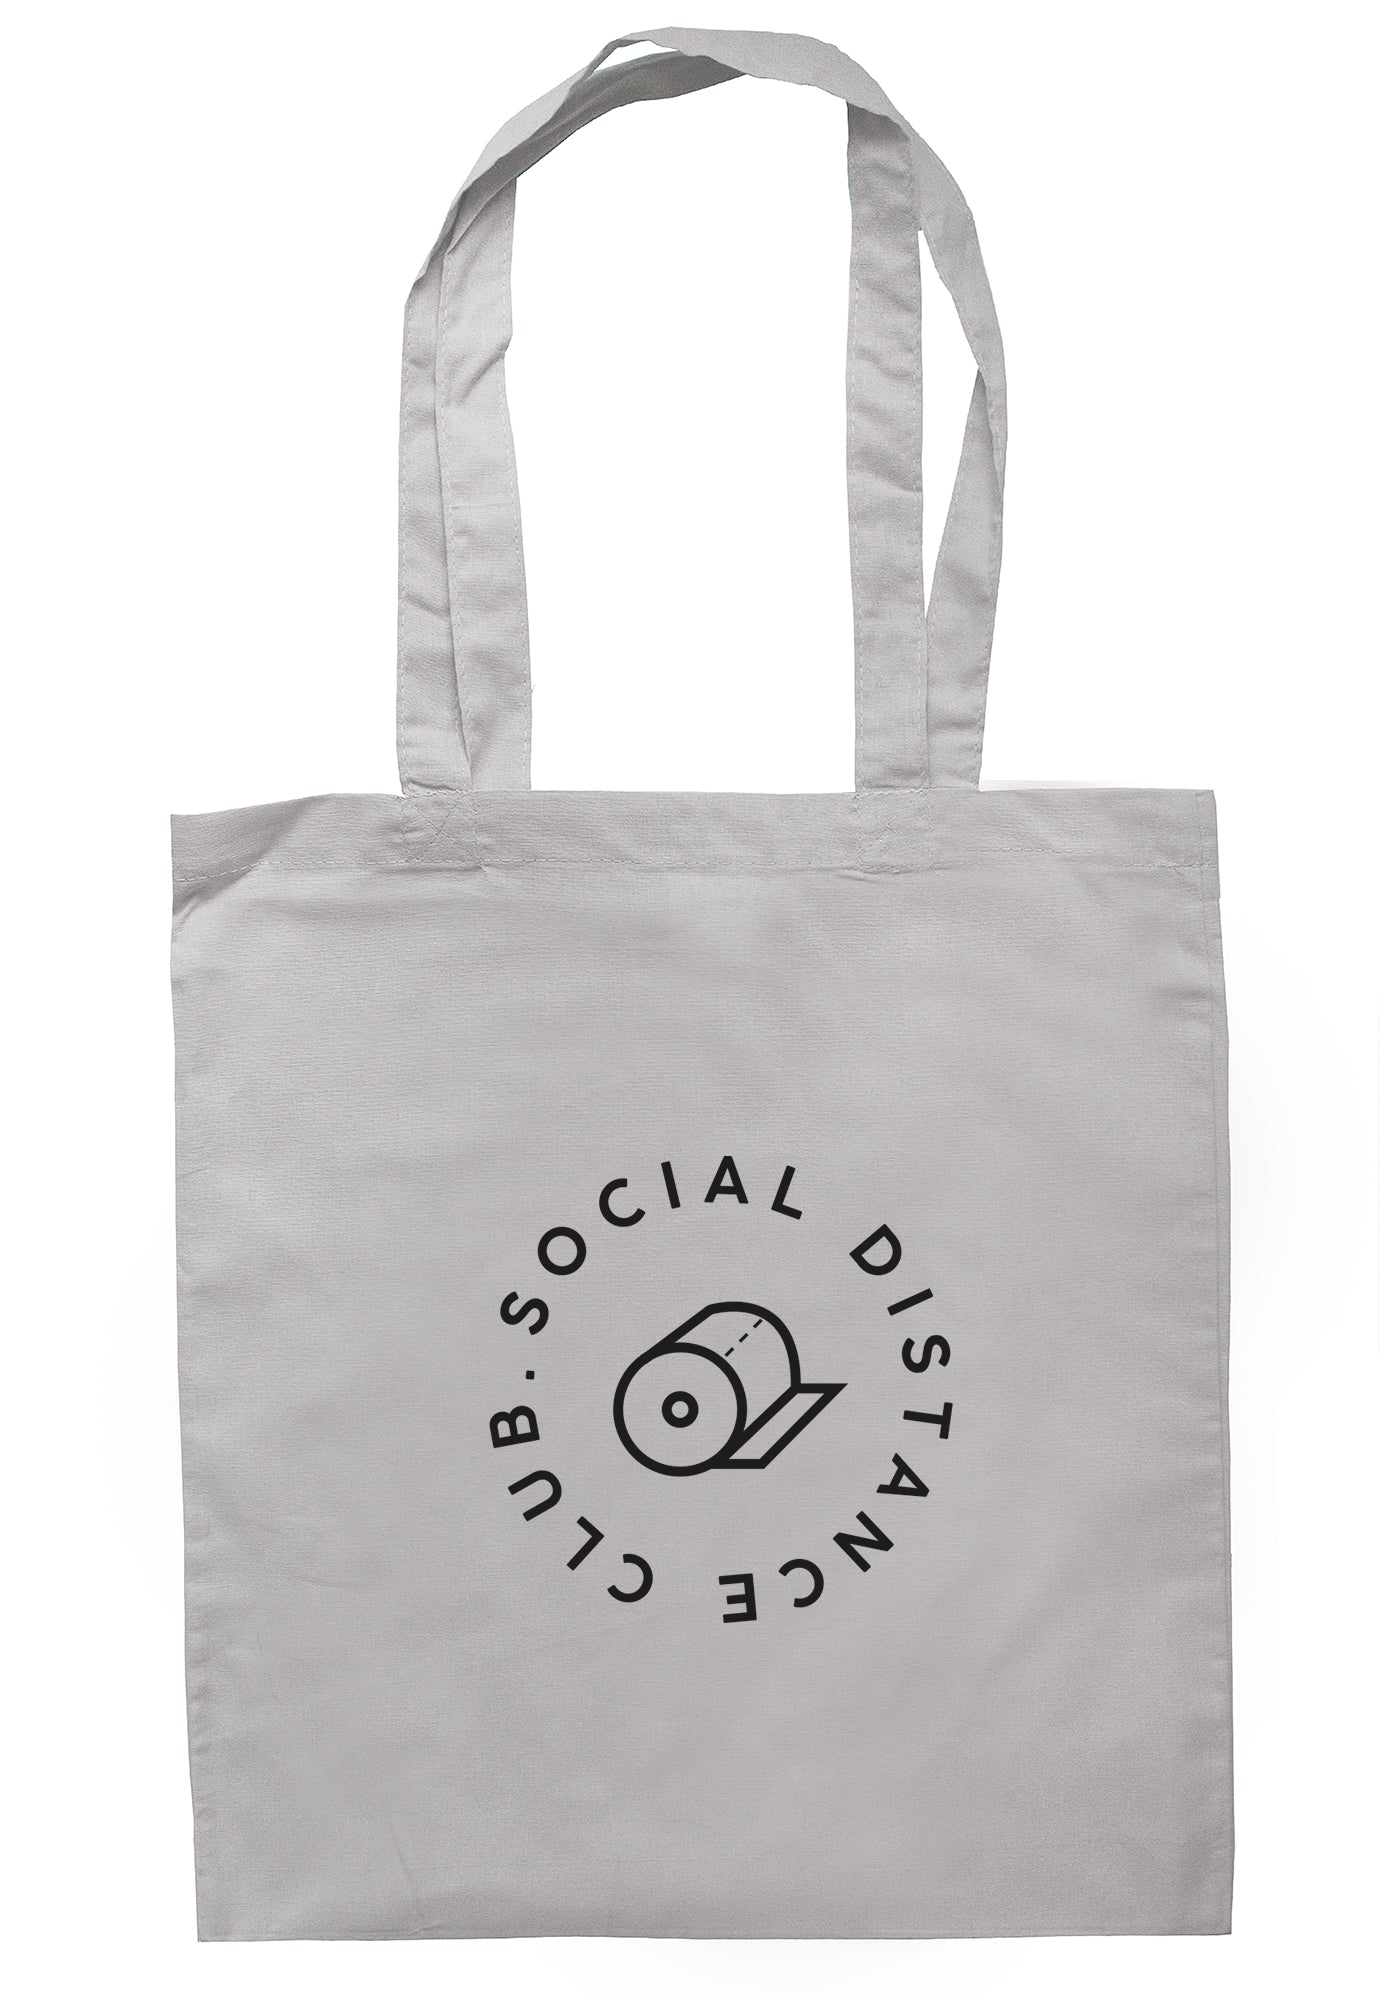 Social Distance Club Tote Bag S1130 - Illustrated Identity Ltd.